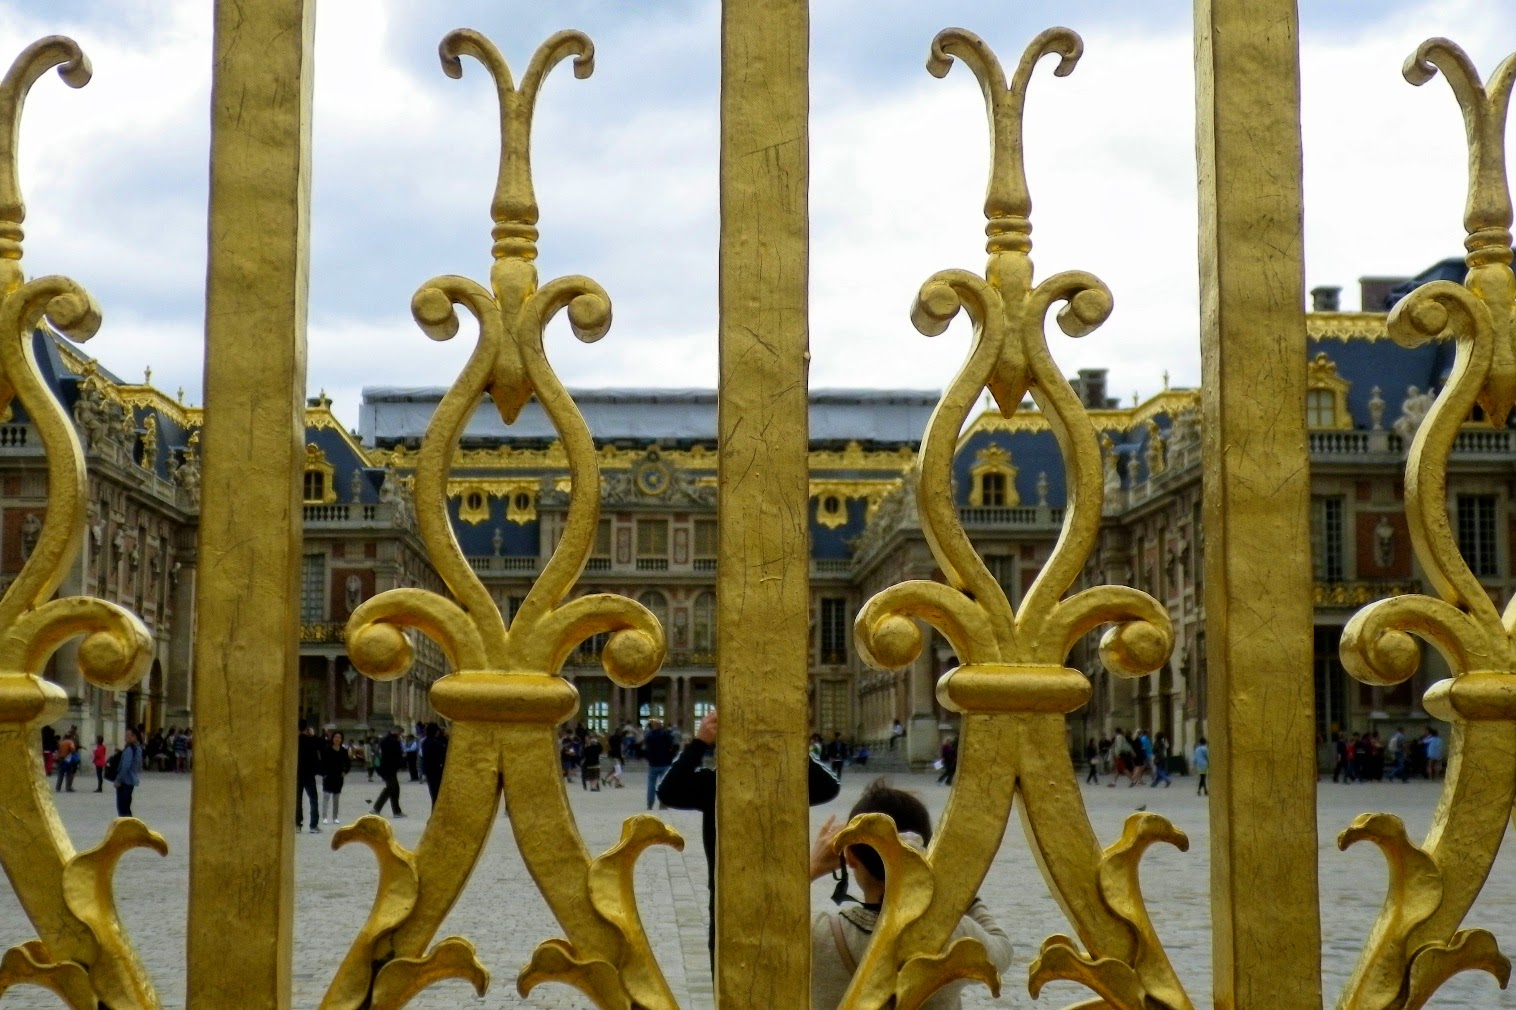 The gate of the Palace of Versailles